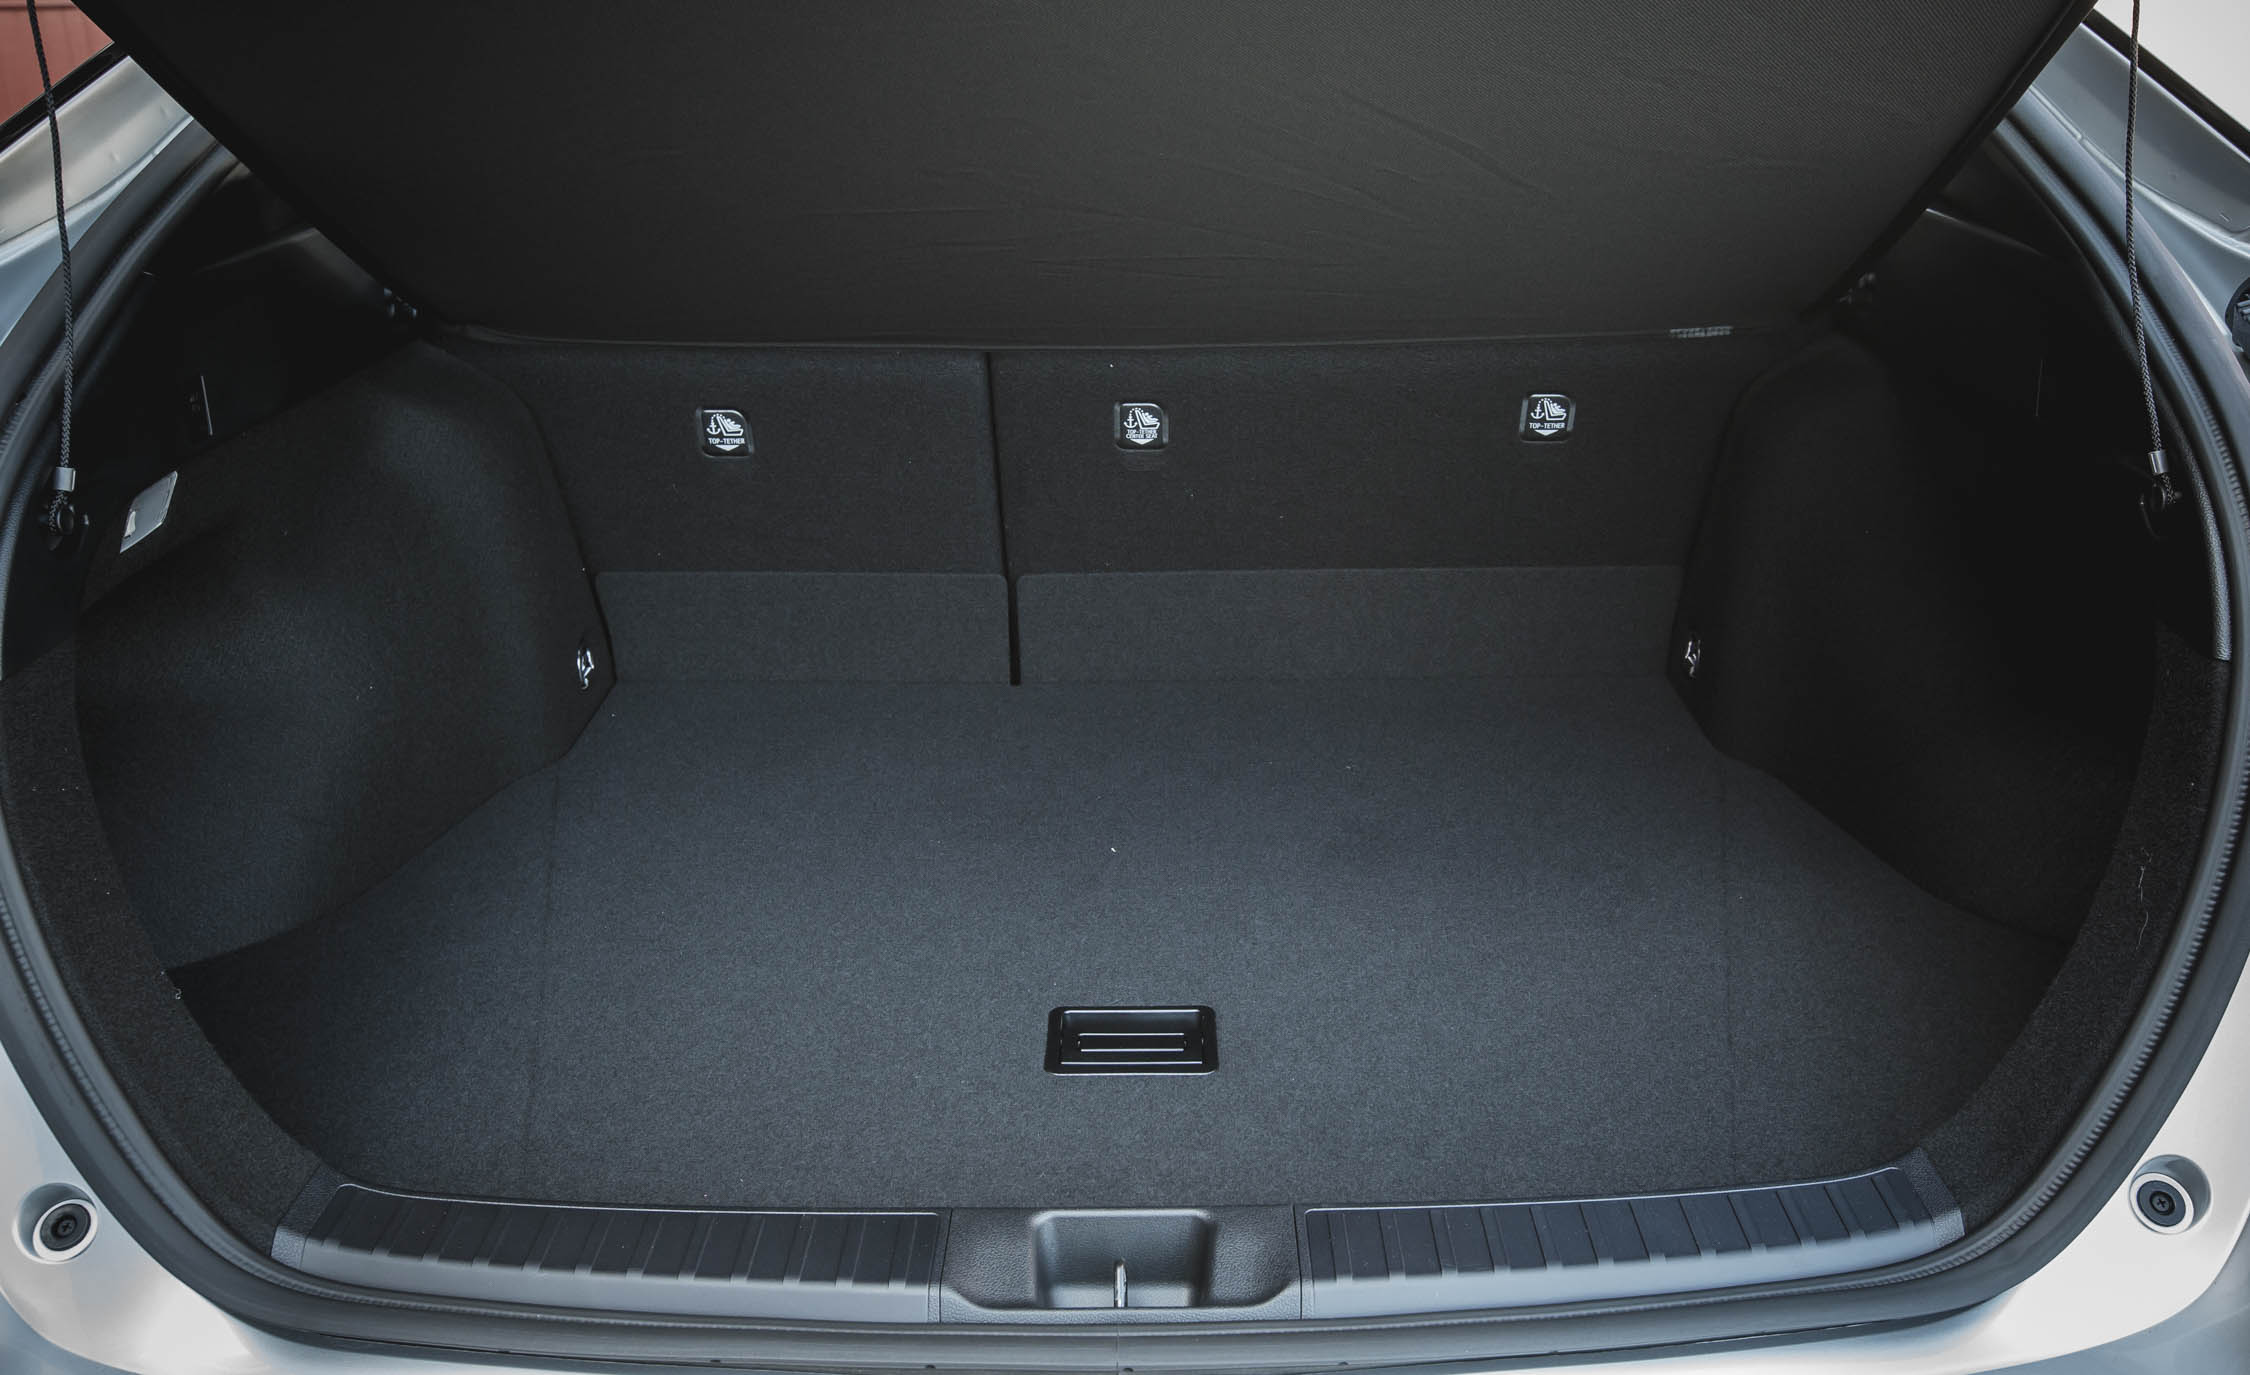 2017 Toyota Prius Interior View Cargo Trunk (Photo 50 of 64)